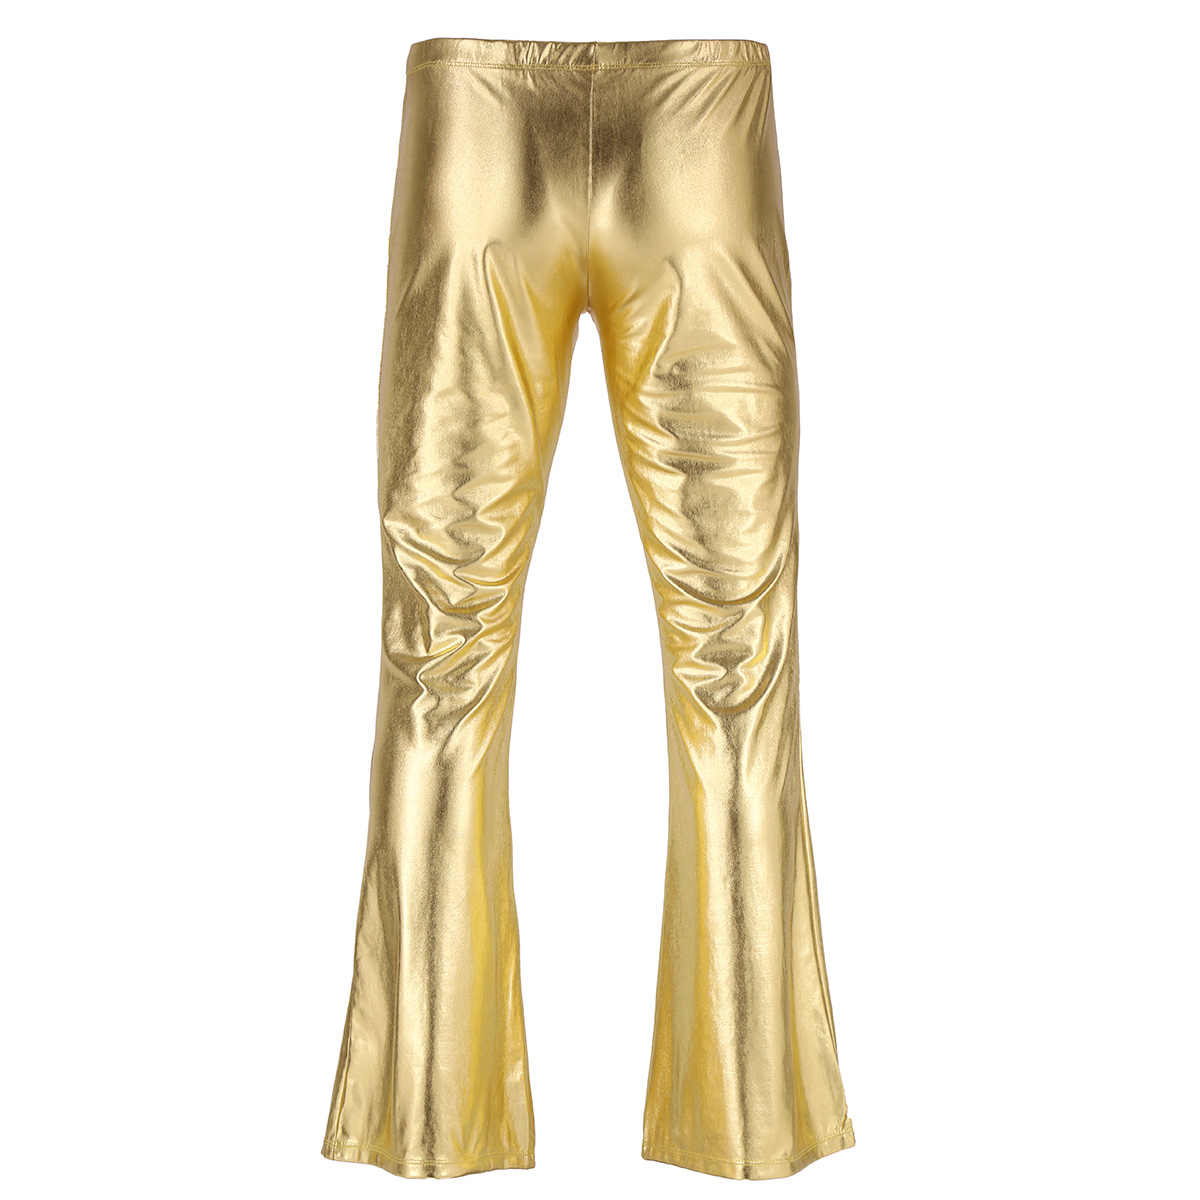 Adult Mens Moto Punk Style Party Pants Shiny Metallic Disco Pants with Bell Bottom Flared Long Pants Dude Costume Trousers 21